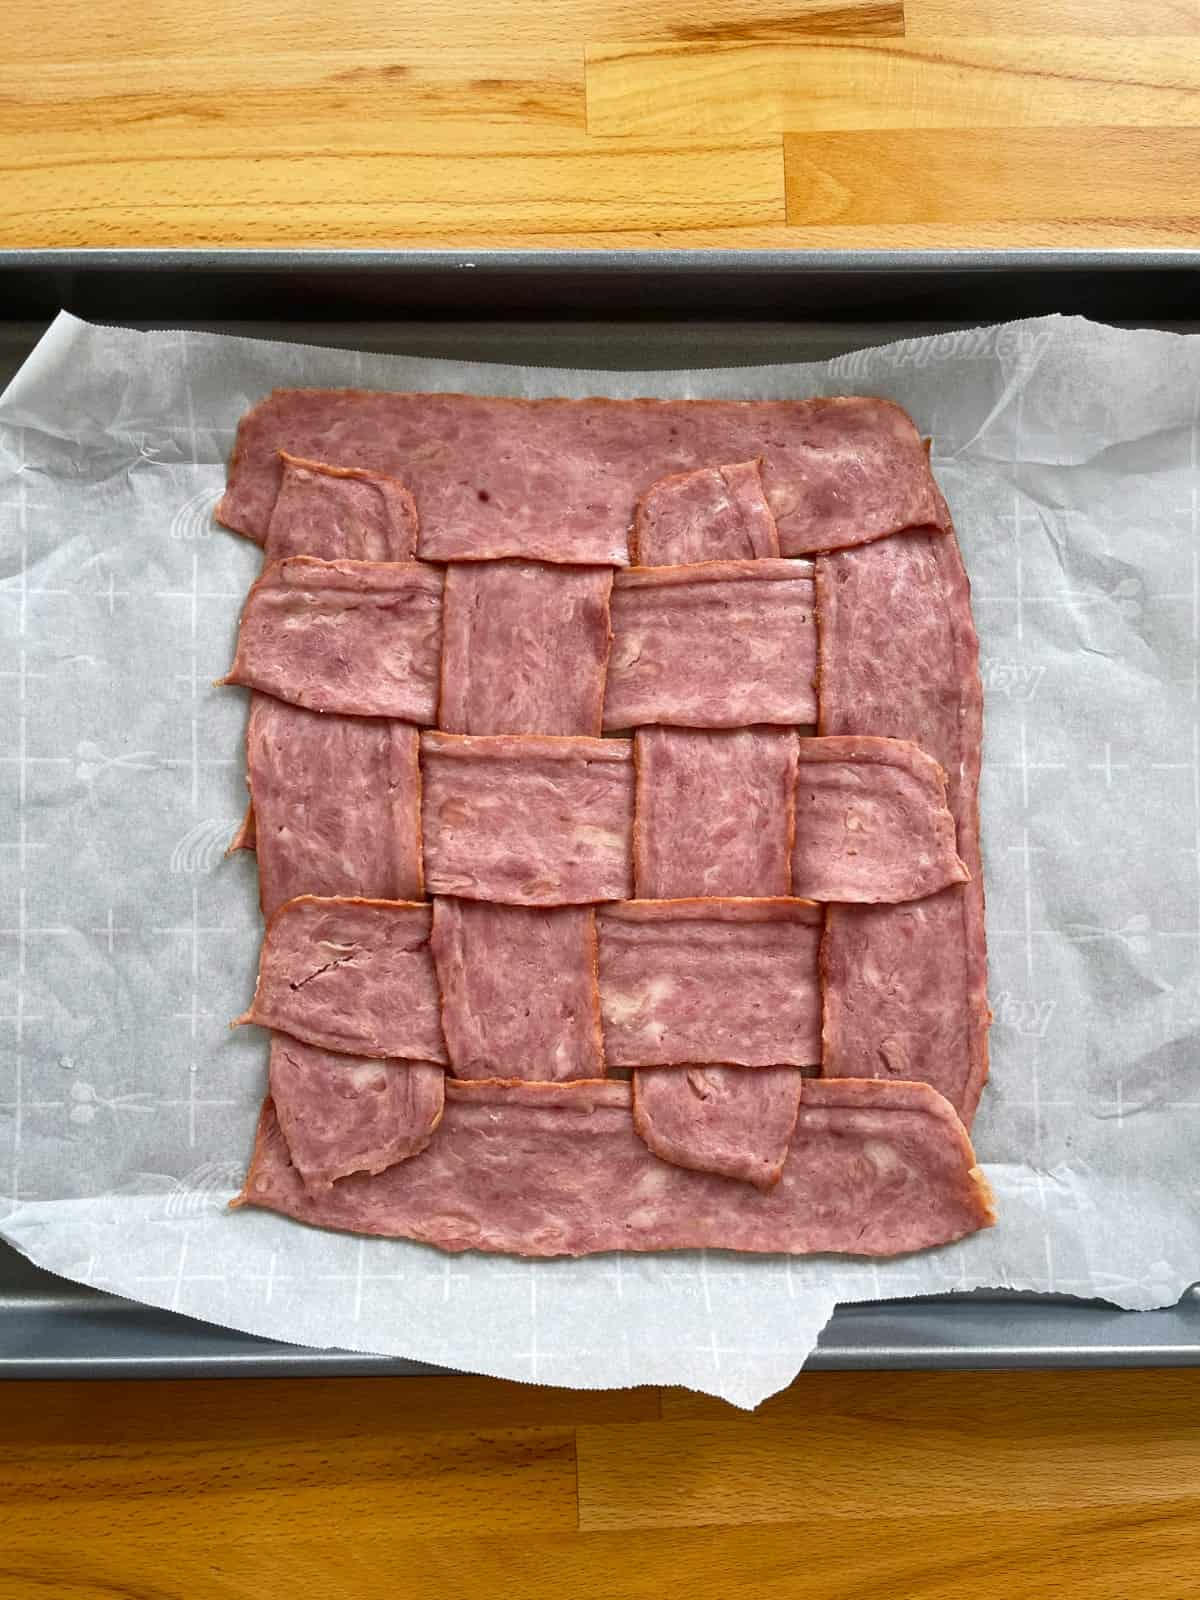 Strips of uncooked turkey bacon woven into lattice on parchment lined baking sheet.